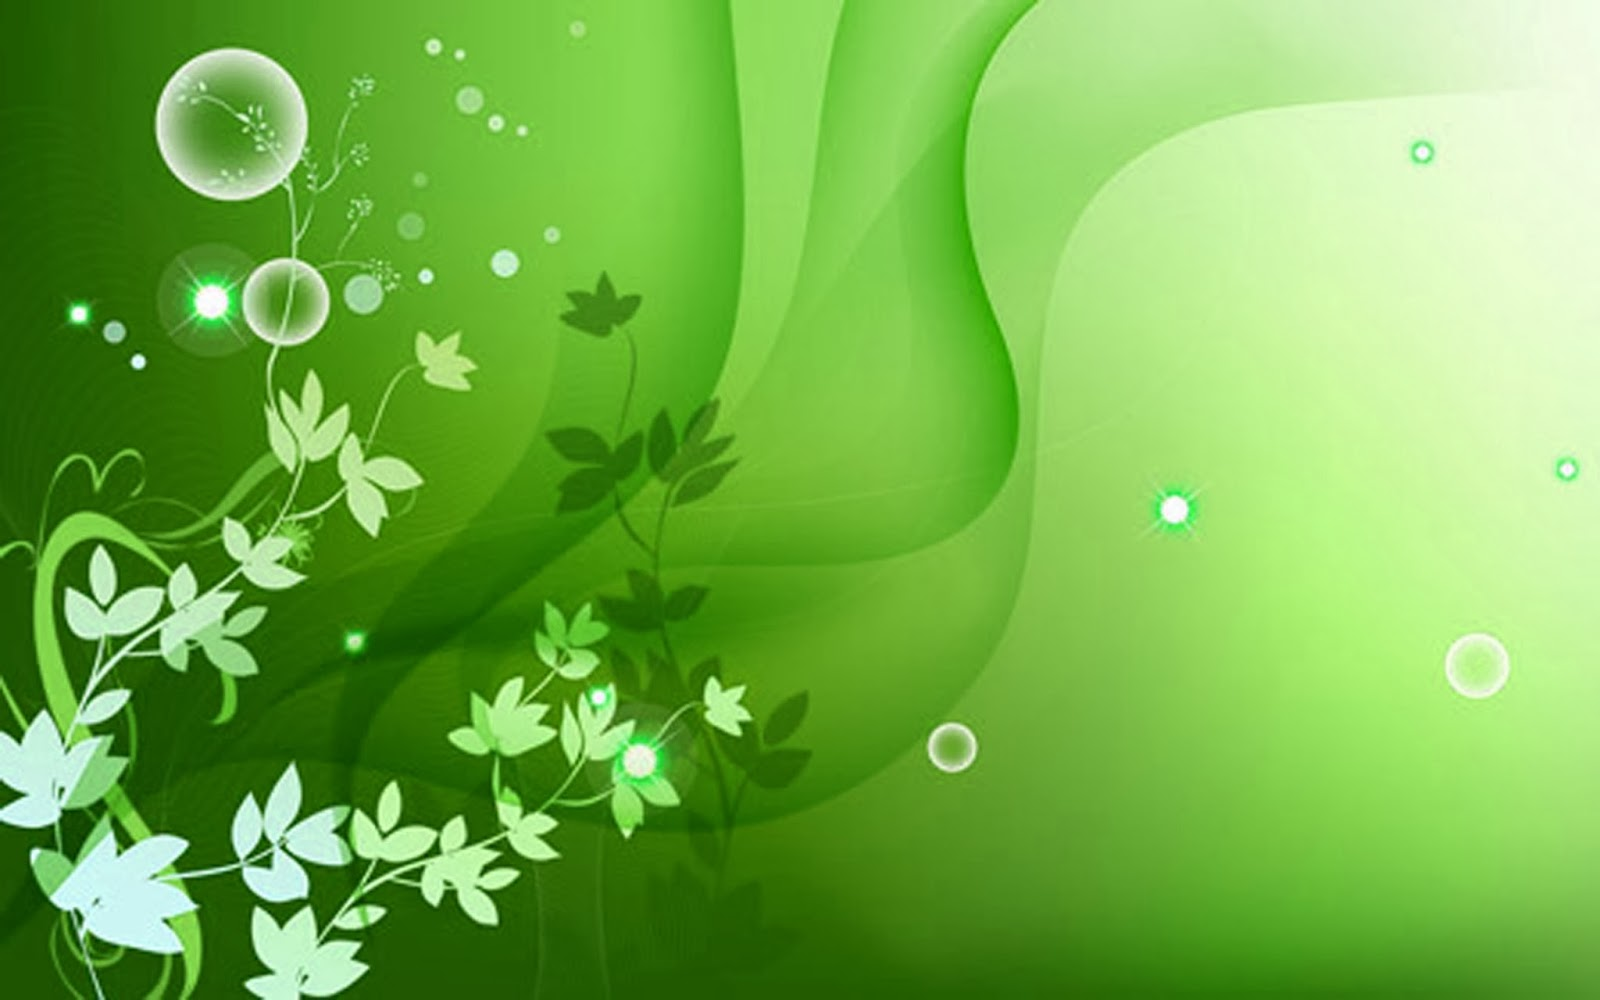 Color Wallpaper Green Flower Wallpaper 1600x1000